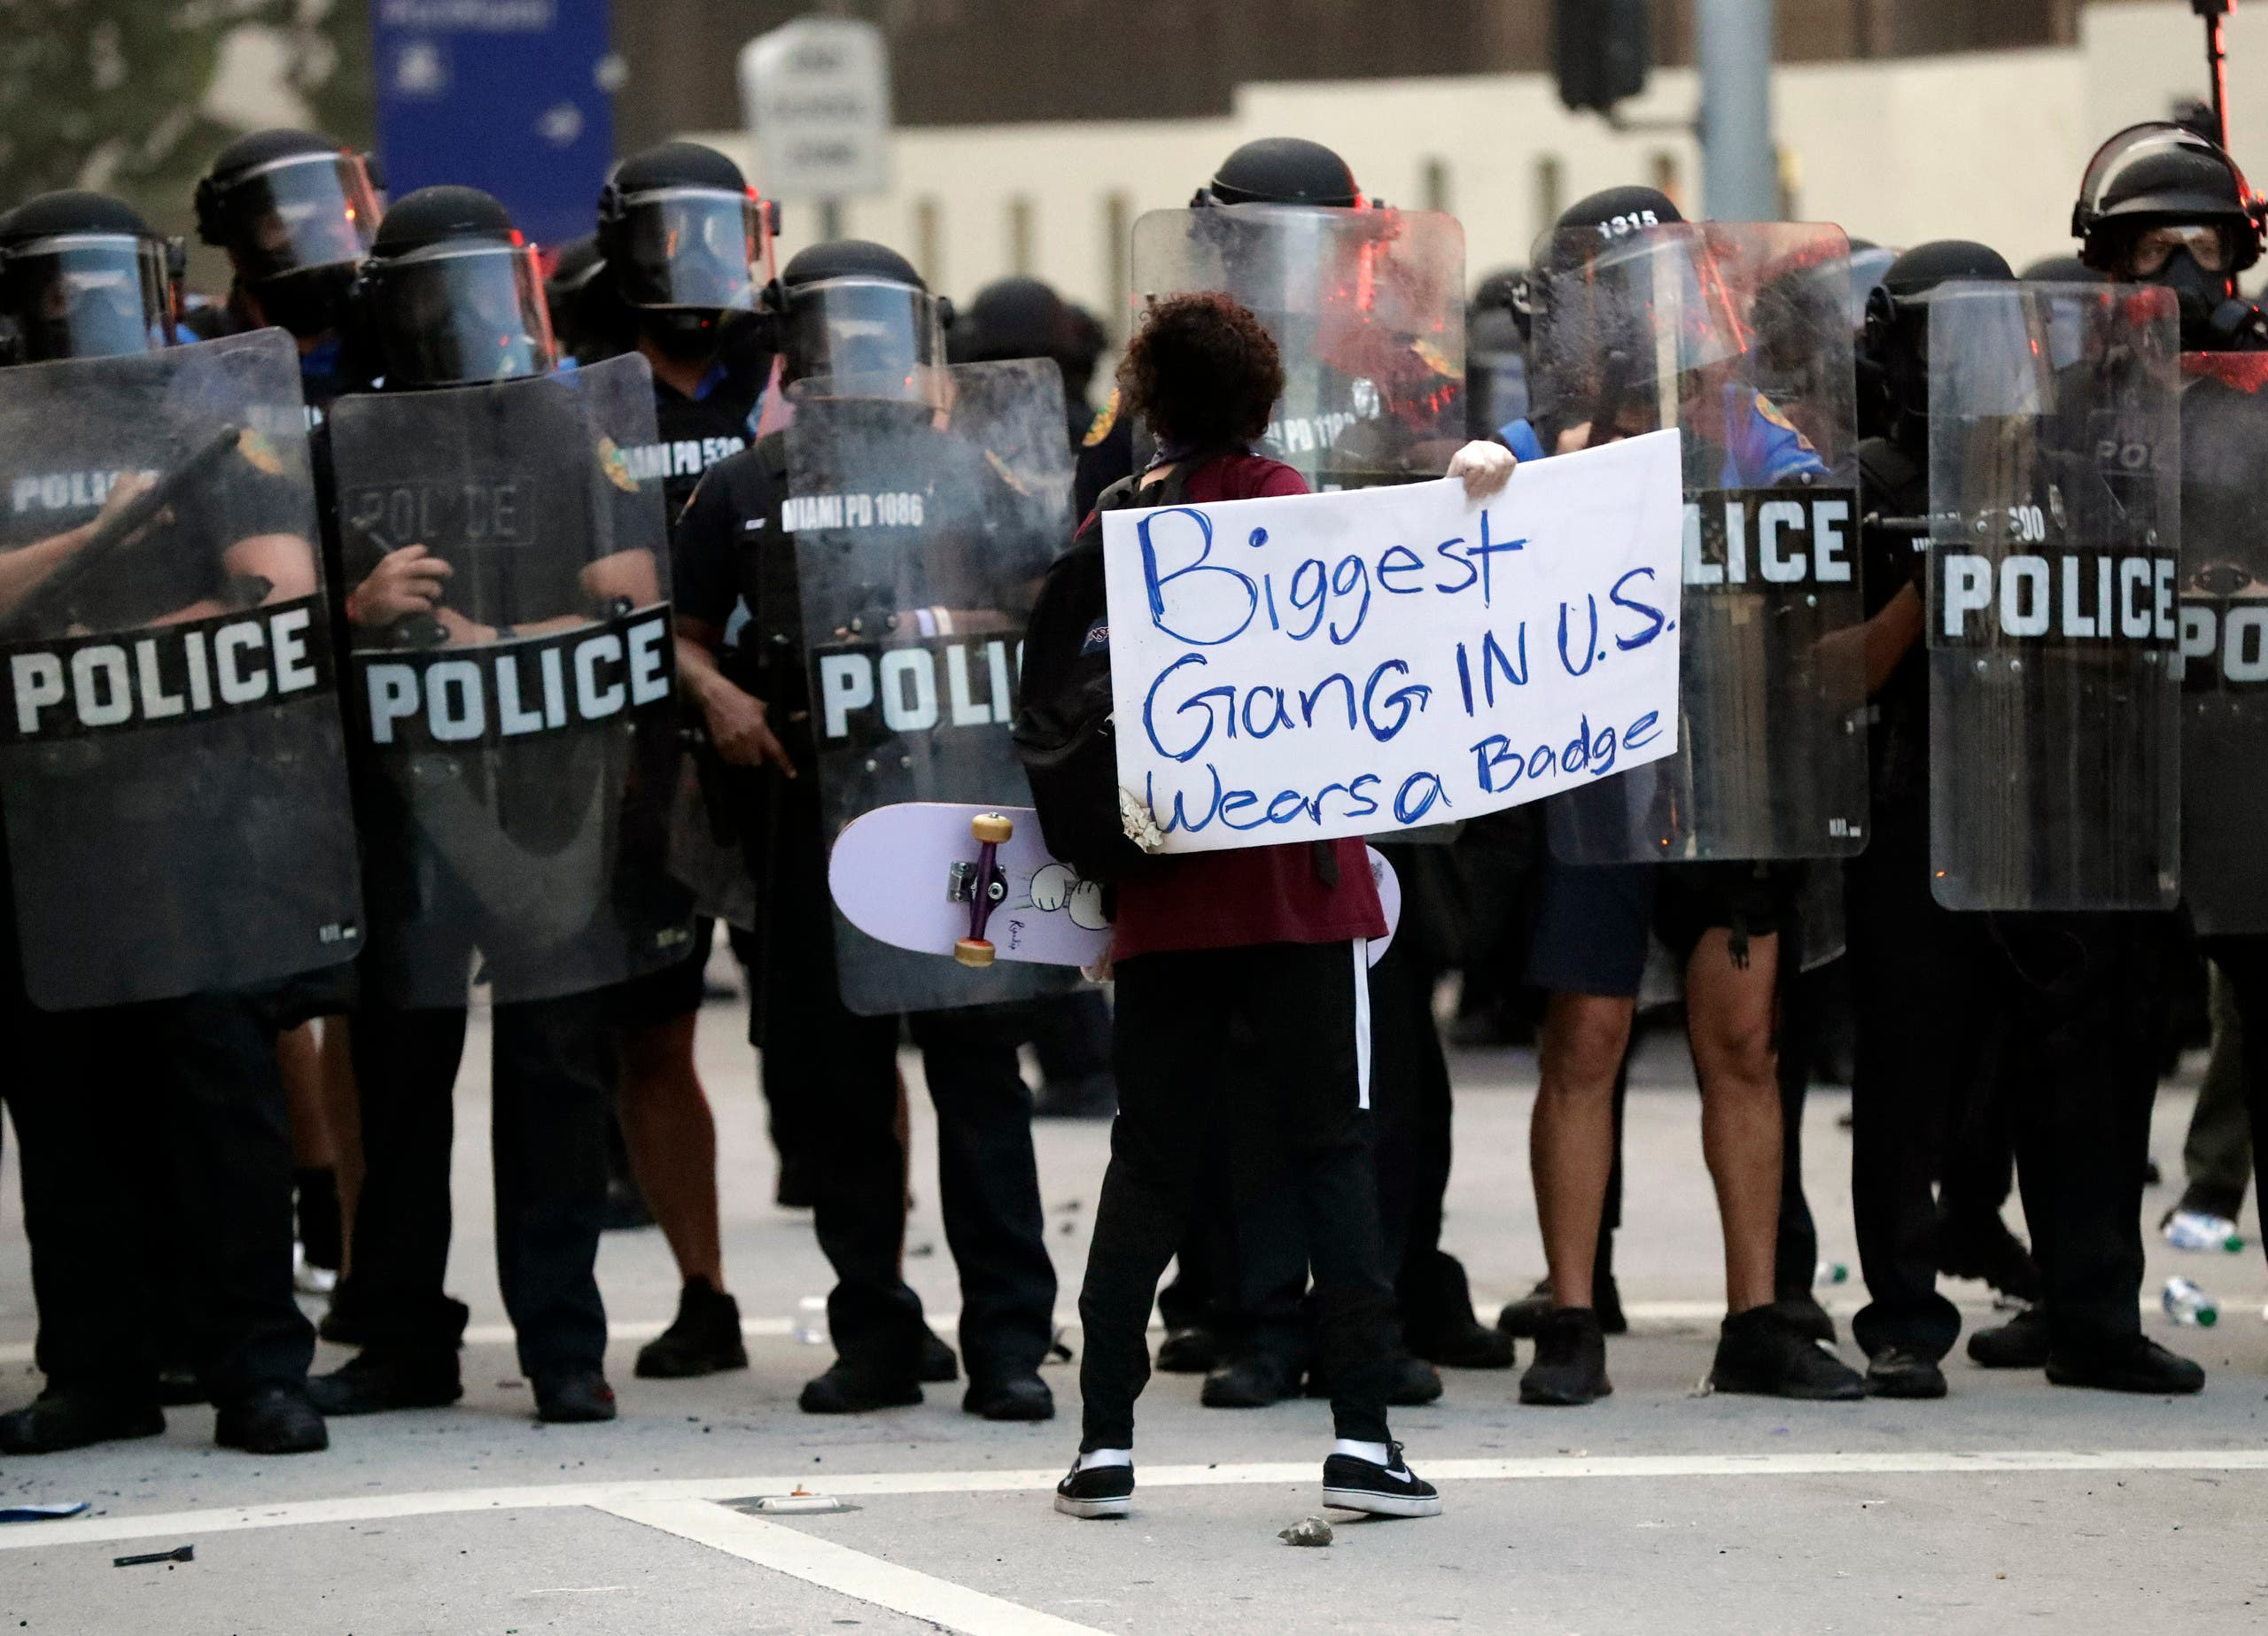 A lone protester confronts a line of police during a demonstration next to the city of Miami Police Department, downtown in Miami. (AP)